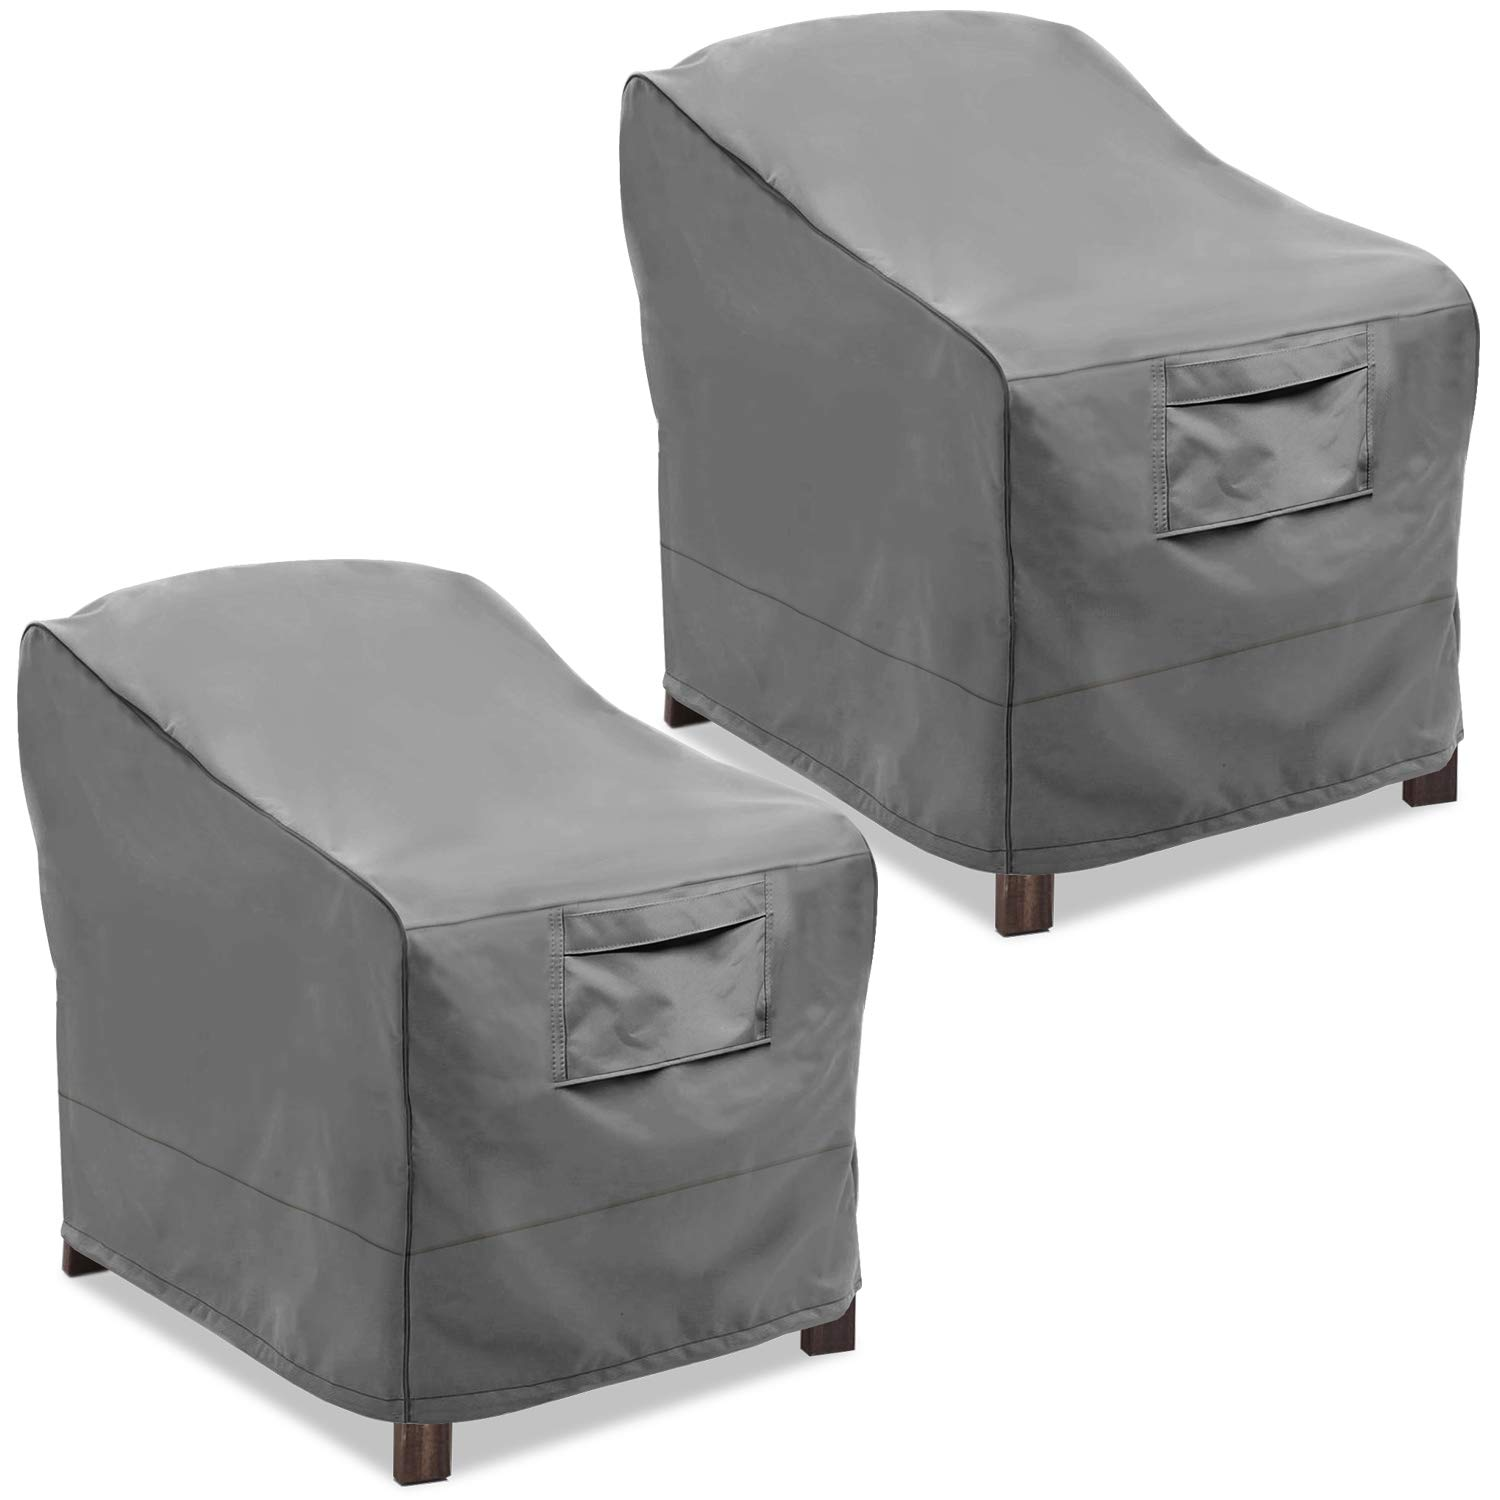 Vailge Patio Chair Covers, Lounge Deep Seat Cover, Heavy Duty and Waterproof Outdoor Lawn Patio Furniture Covers (2 Pack - Large, Grey) by Vailge